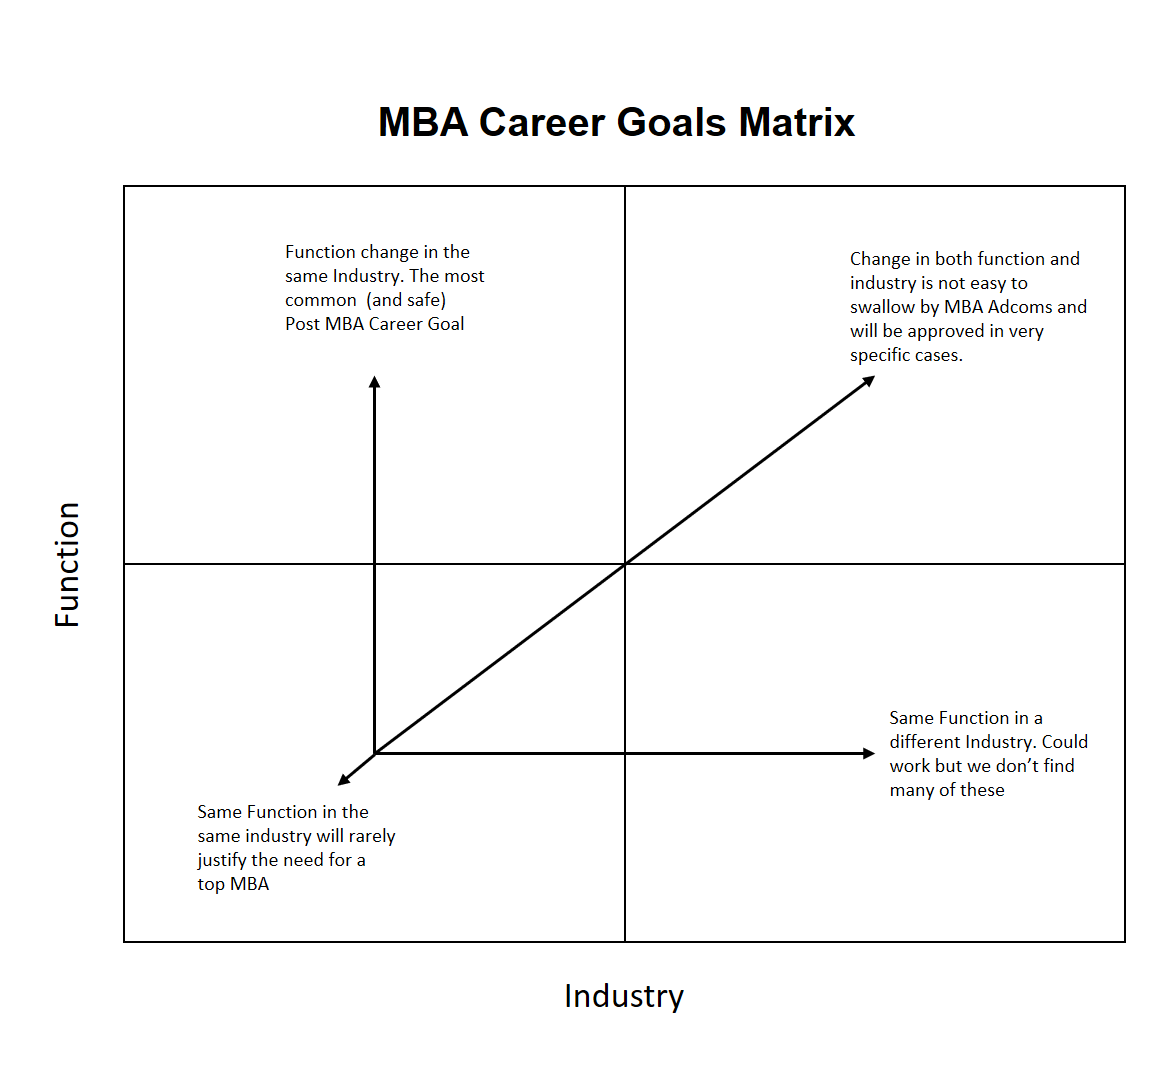 wharton essay analysis ivy mba consulting  short term goals career matrix